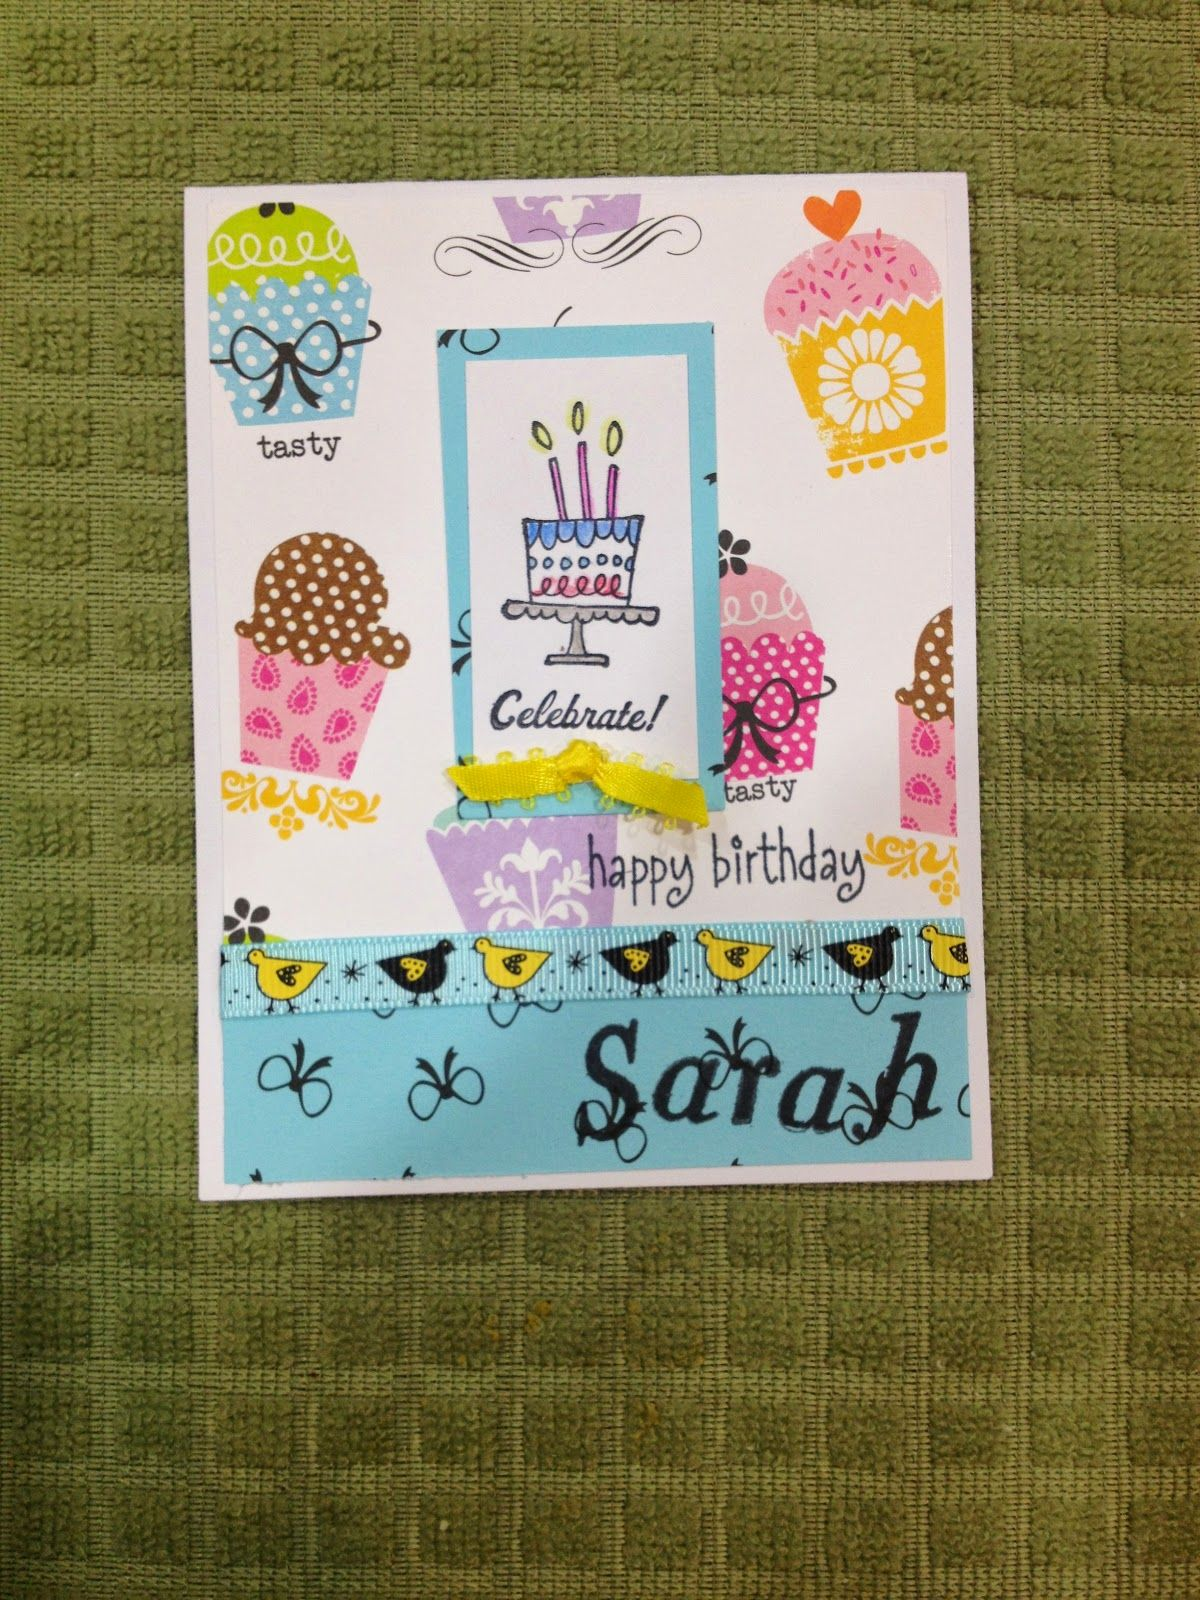 Broadway Blessings Cards Birthday Cards Happy Birthday Sarah